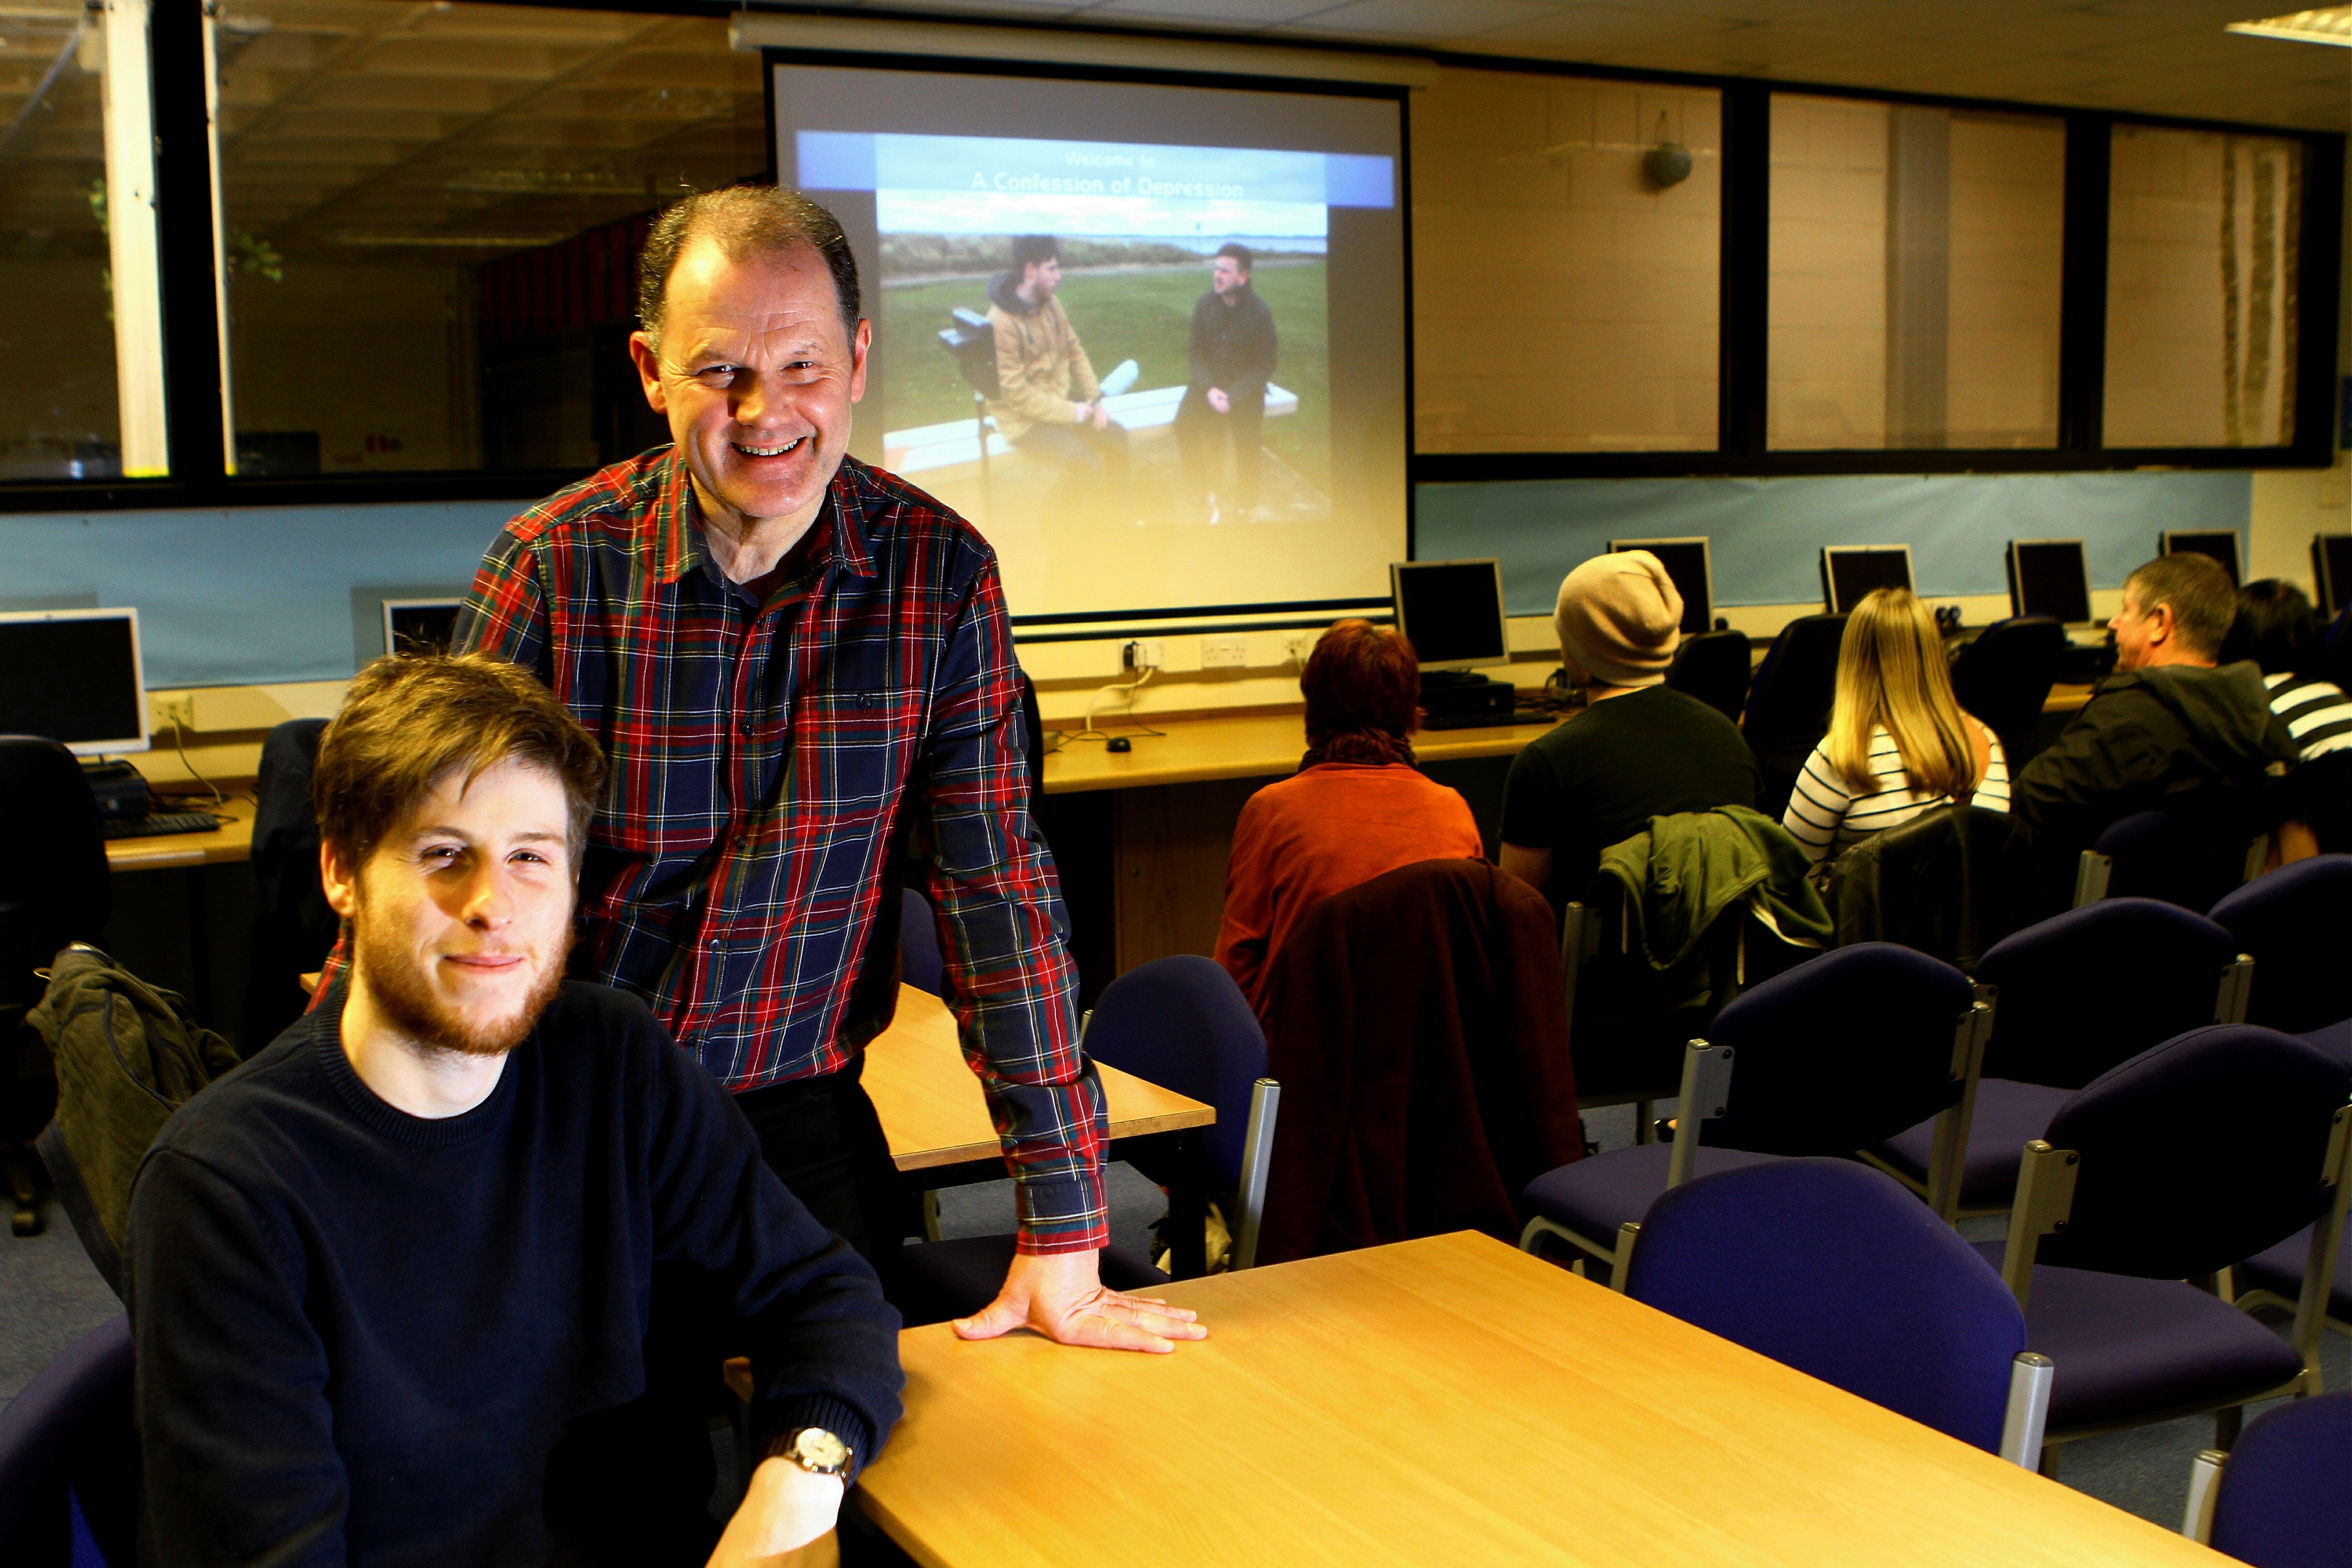 Cllr Ben Lawrie, seated, and documentary director Stuart Burns before the showing of their film A Confession Of Depression at Monifieth High School.